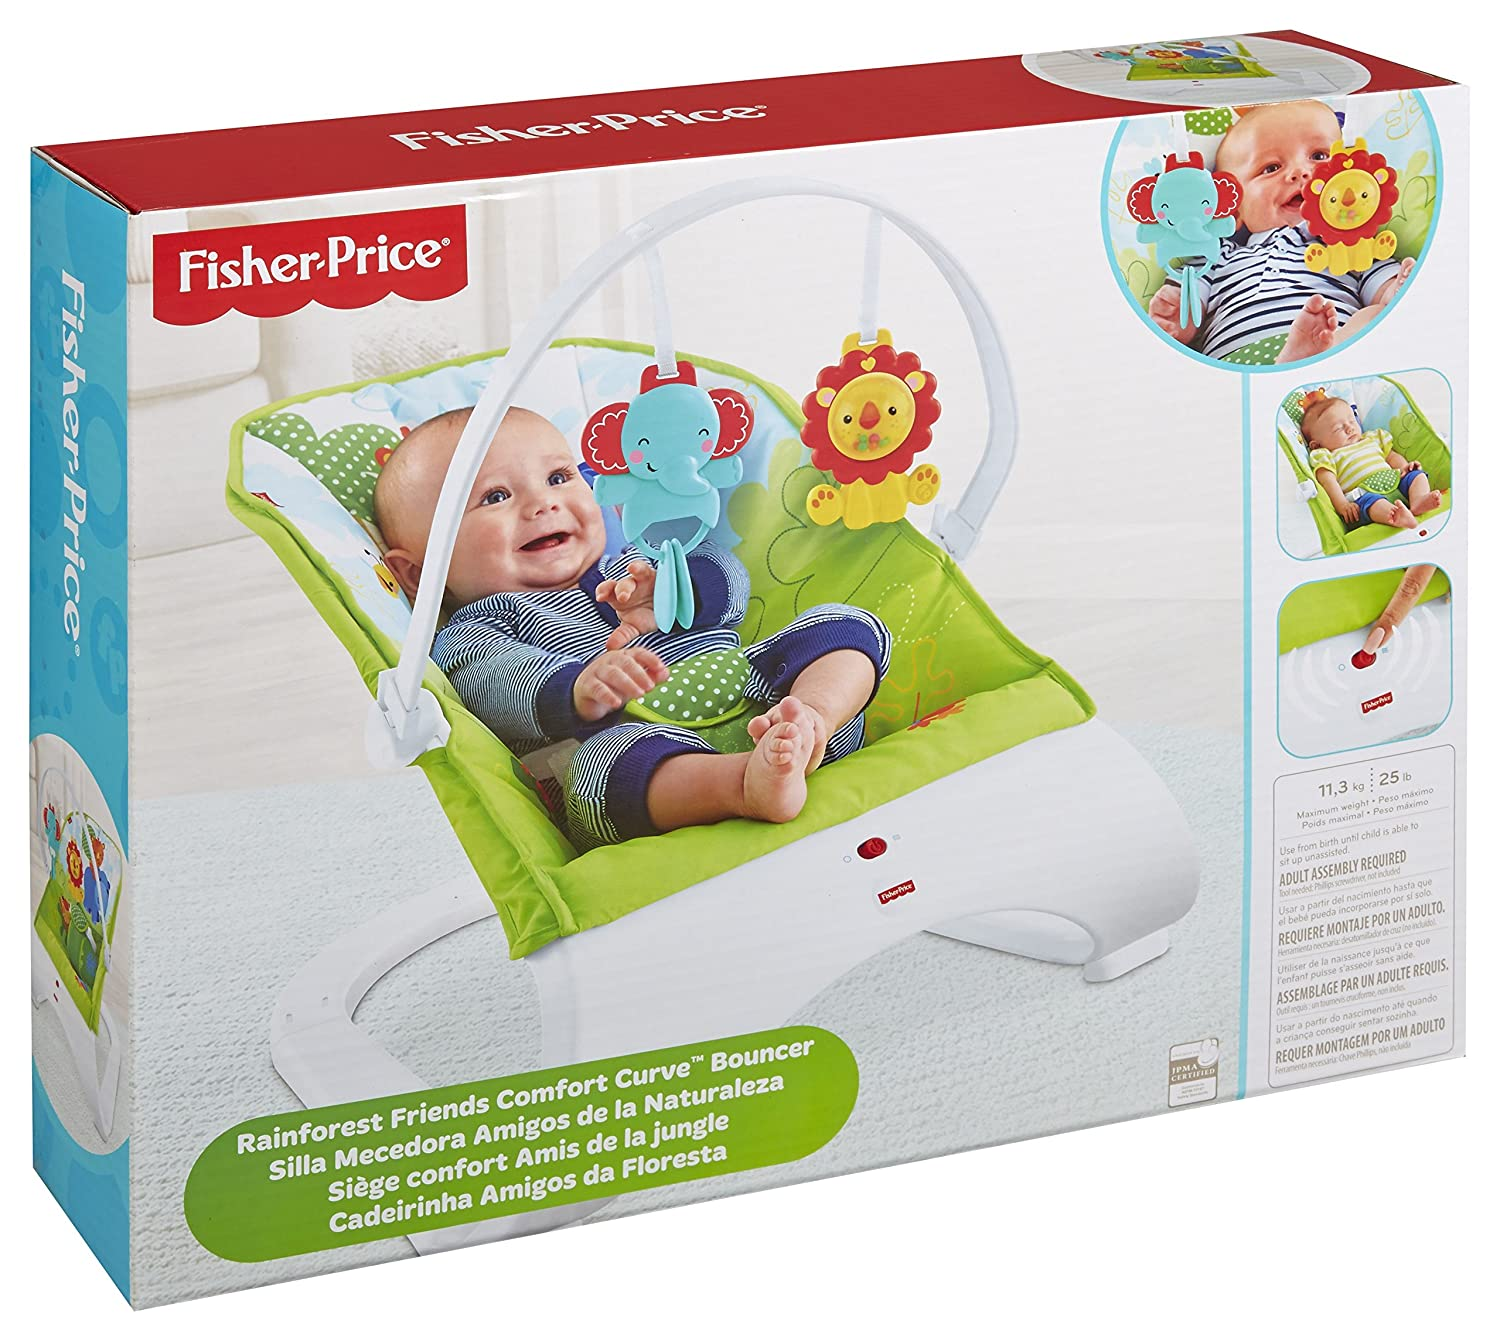 Fisher-Price Rainforest Friends Comfort Curve Bouncer by Fisher-Price: Amazon.es: Bebé